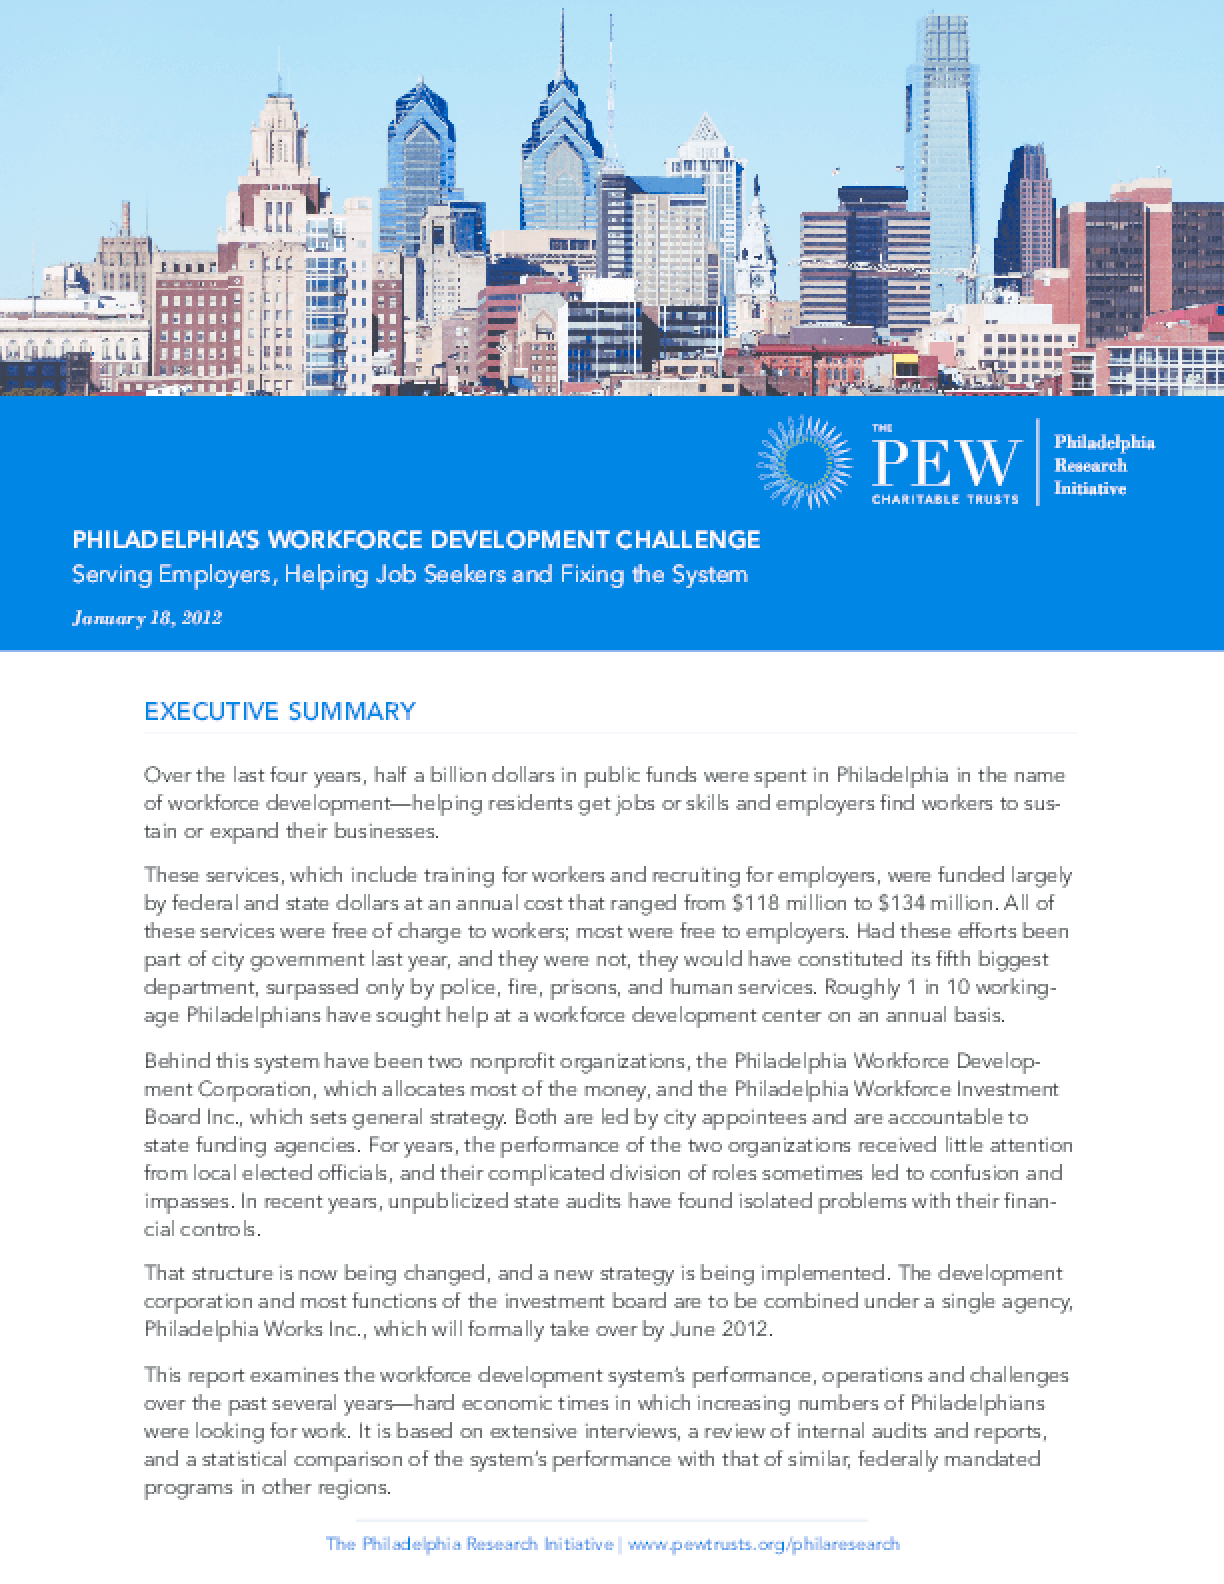 Philadelphia's Workforce Development Challenge: Serving Employers, Helping Jobseekers and Fixing the System